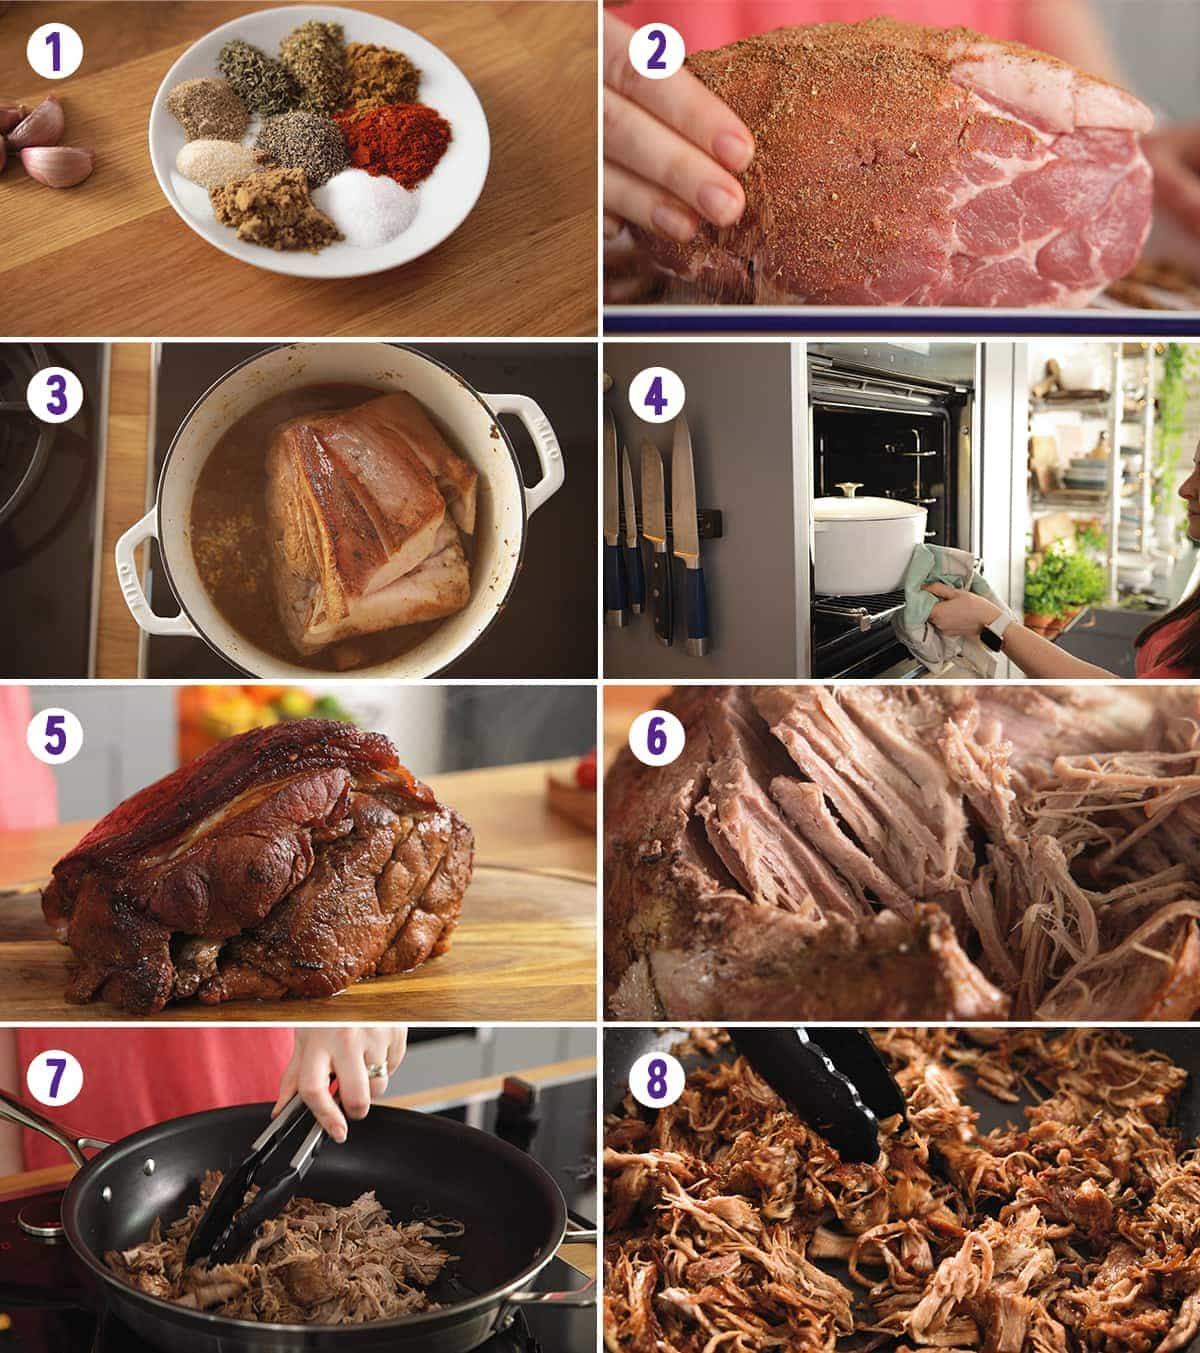 8 image collage showing how to make Pork Gyros